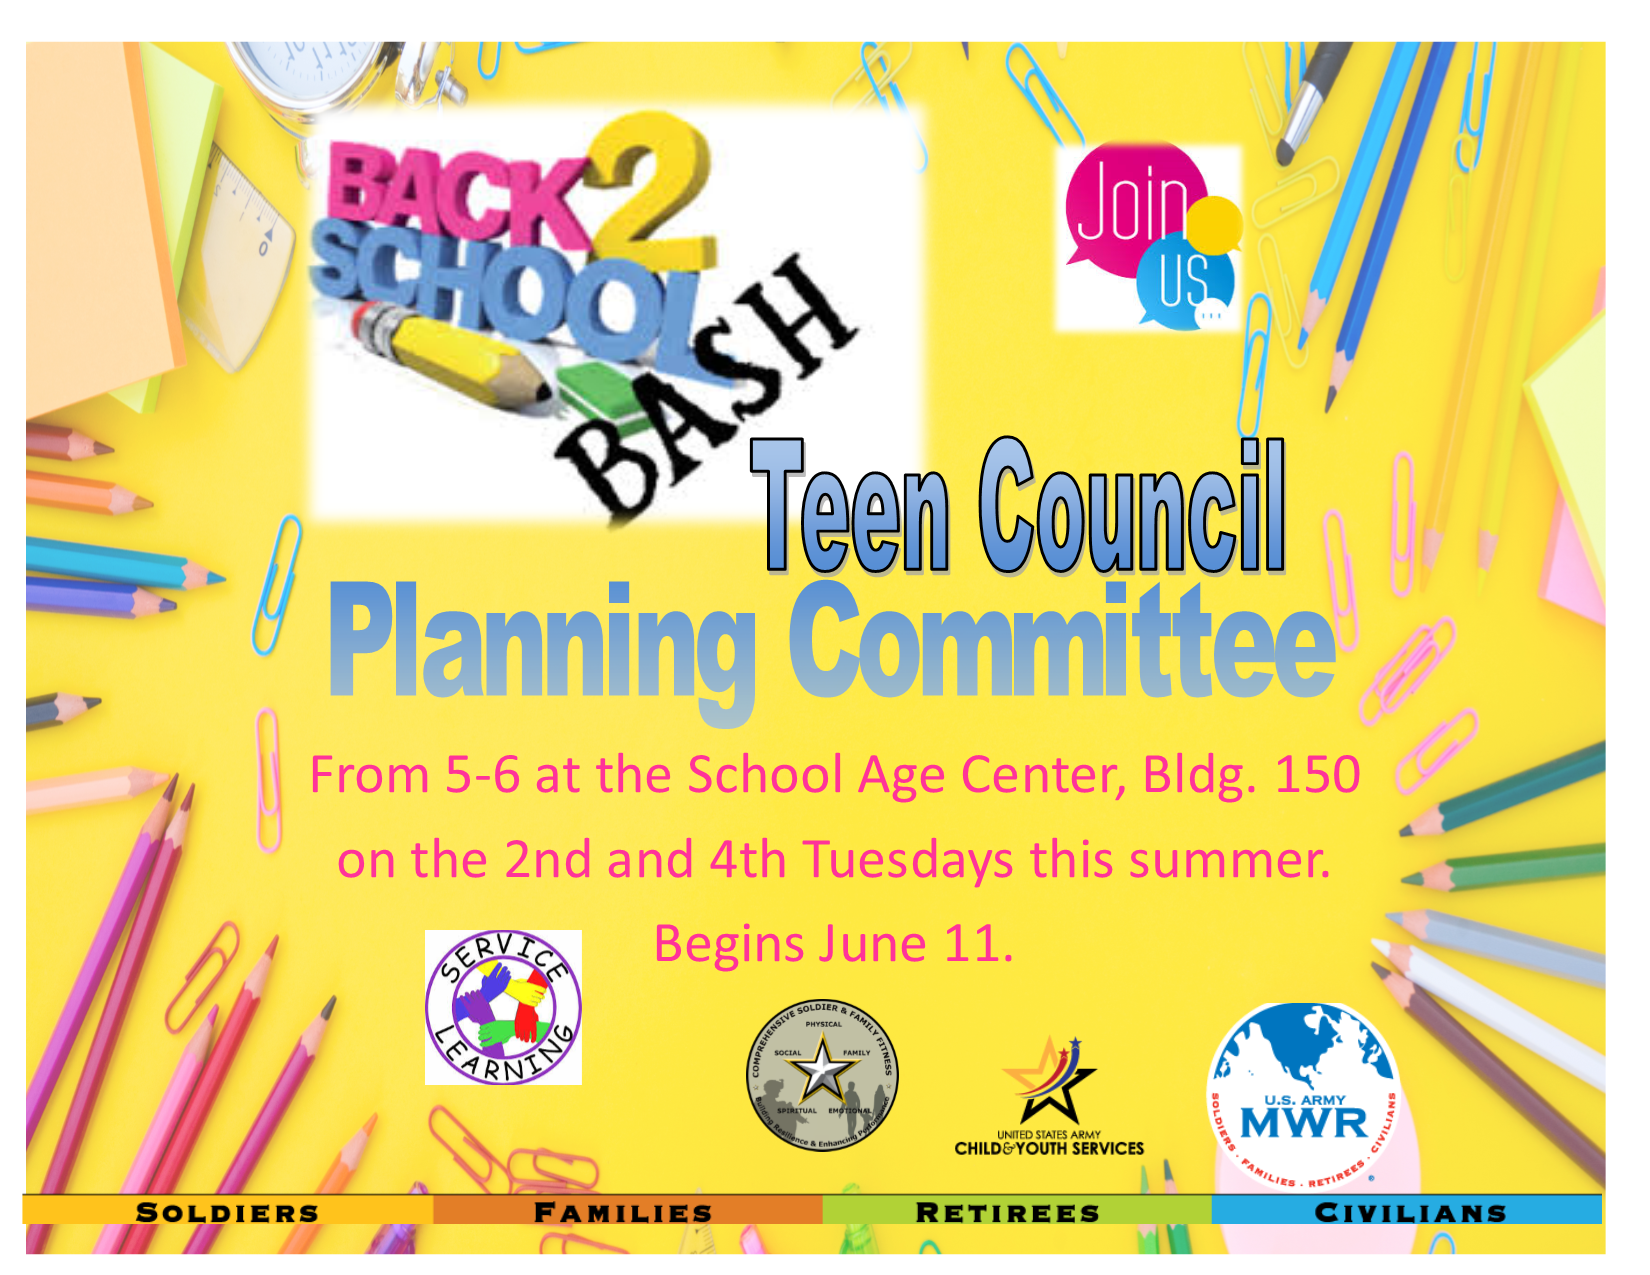 Back to School Bash Teen Council Planning Committee